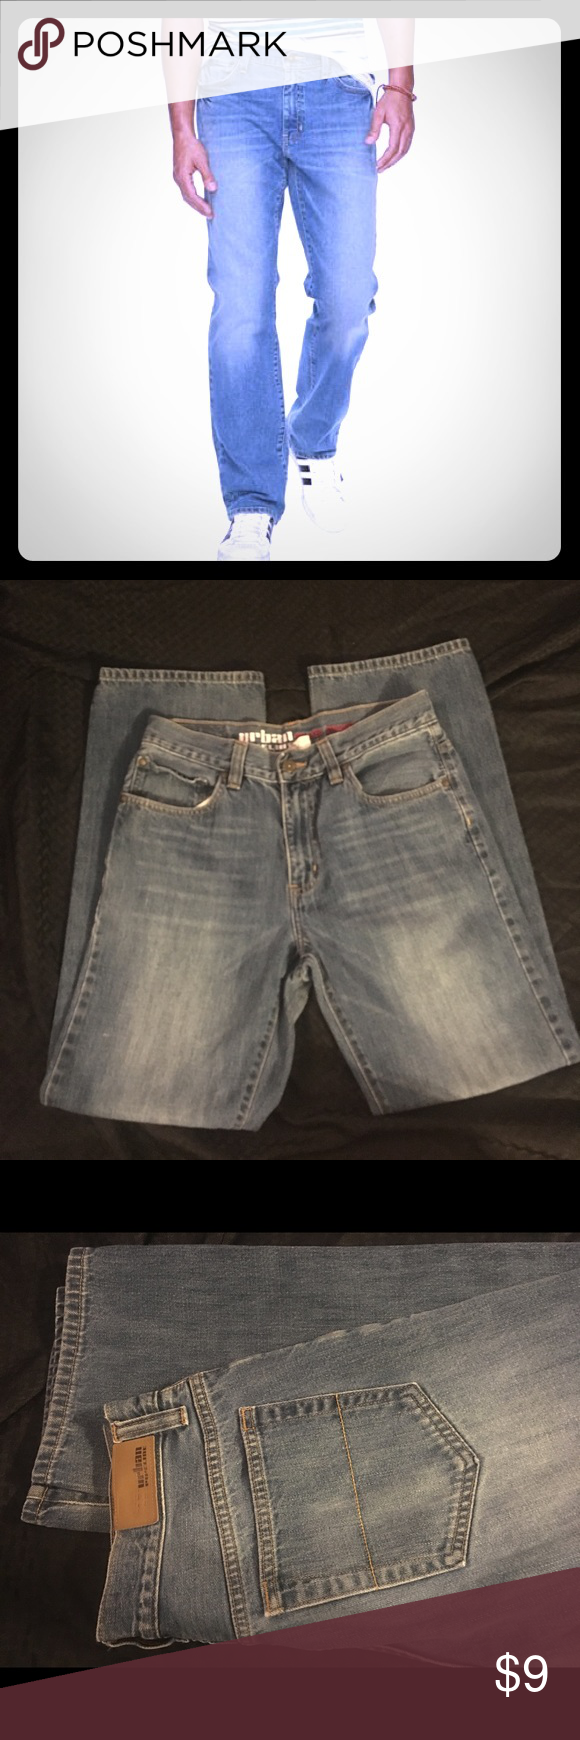 """Urban Pipeline Relaxed Straight Jeans size 32 Men's Urban Pipeline Relaxed Straight Jeans size 32.  Great condition and perfect for anything your day brings you.  100% cotton.  Rise 11 1/2"""", waist 15"""", inseam 30 1/2"""", bottom of leg opening 9 Urban Pipeline Jeans Relaxed"""